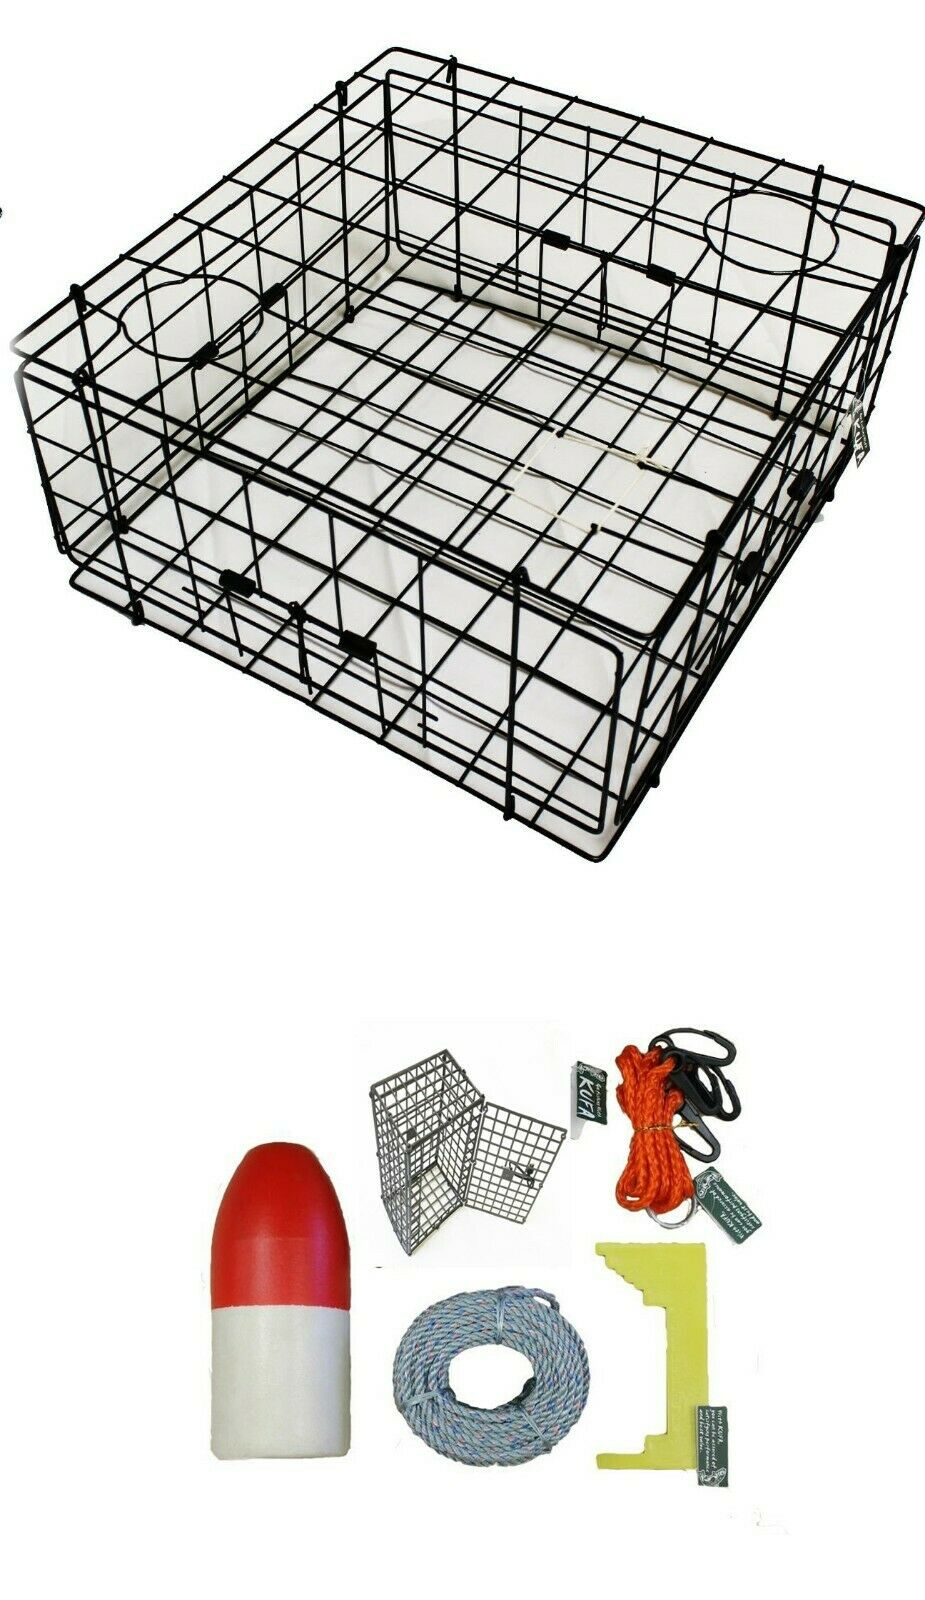 KUFA 24x24x12 Vinyl Coated Crab Trap & All Included Accessory kit S60CEQ3